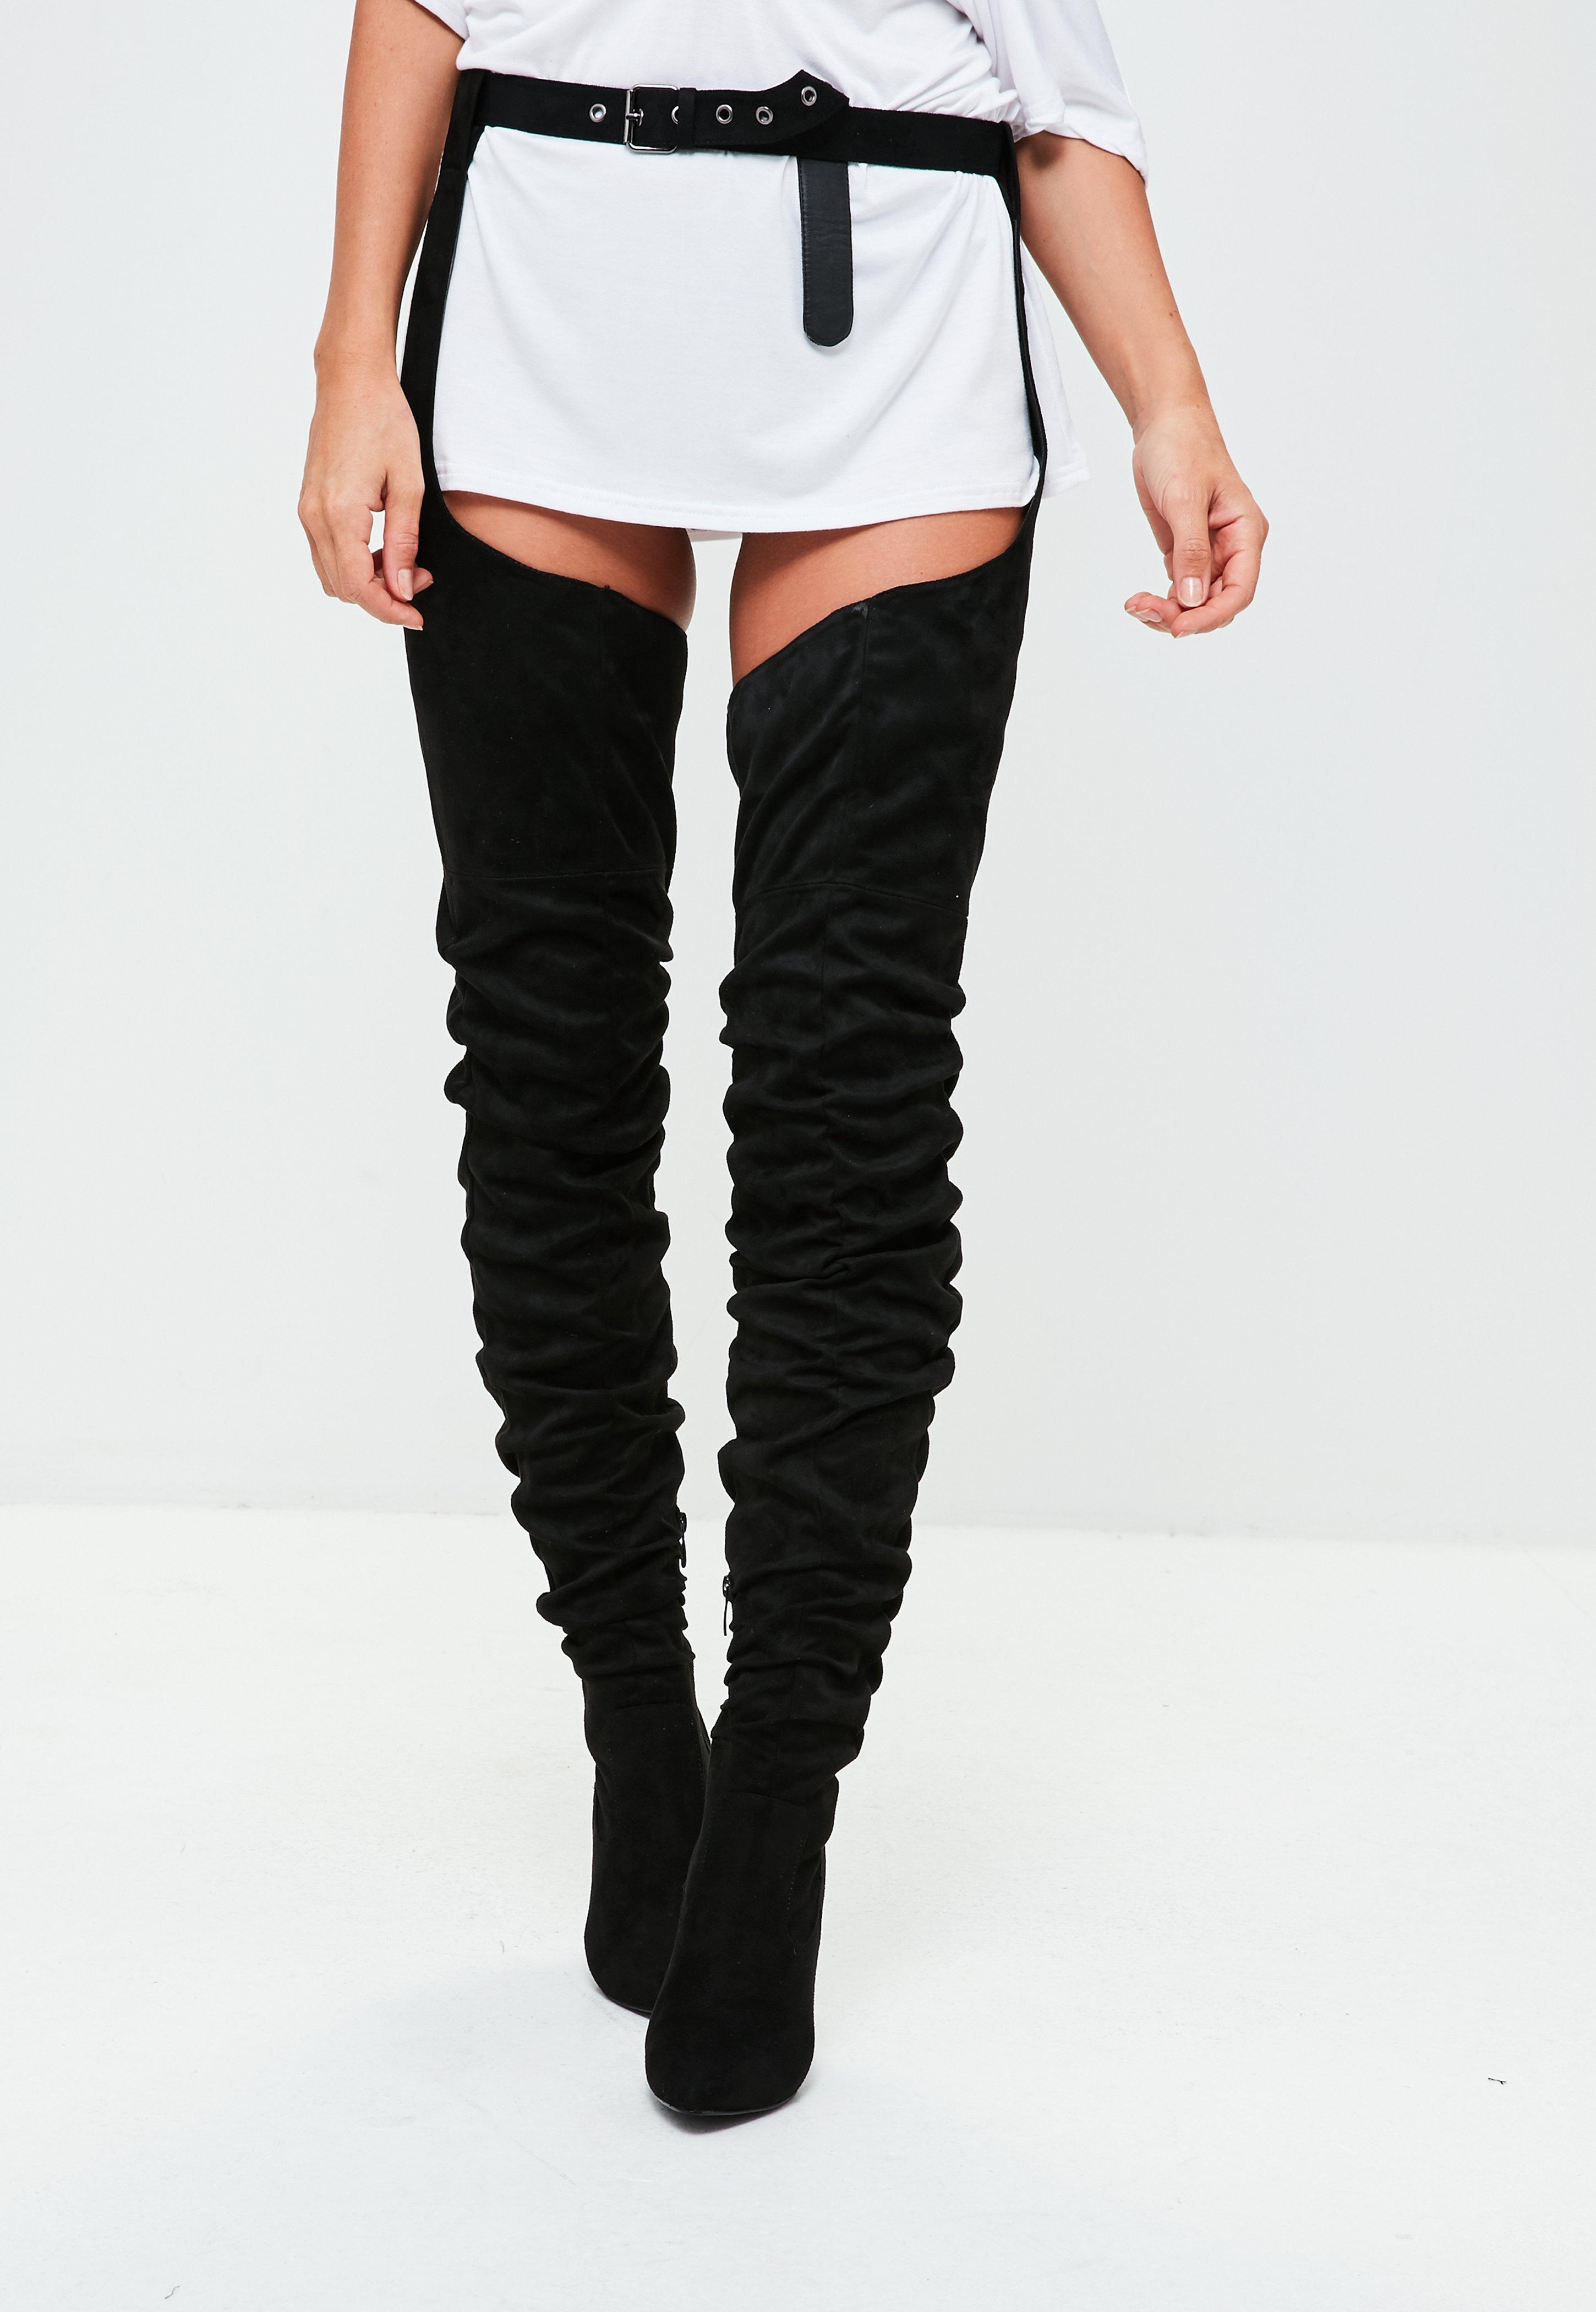 29f150b69af1 Lyst - Missguided Black Faux Suede Harness Over The Knee Boots in Black